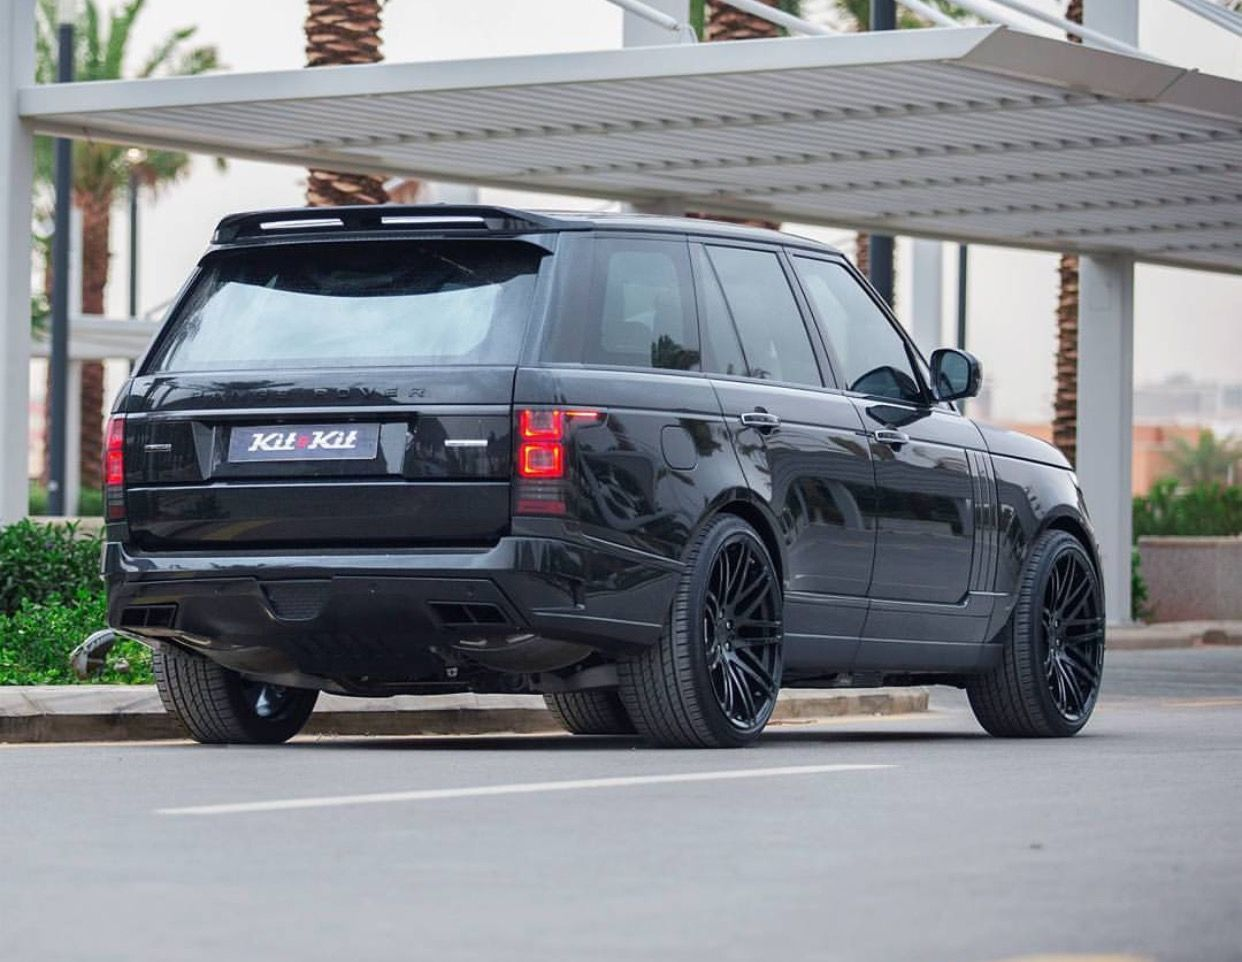 Pin by mehrdad zakikhani on 4x4 Range rover svr, Land rover